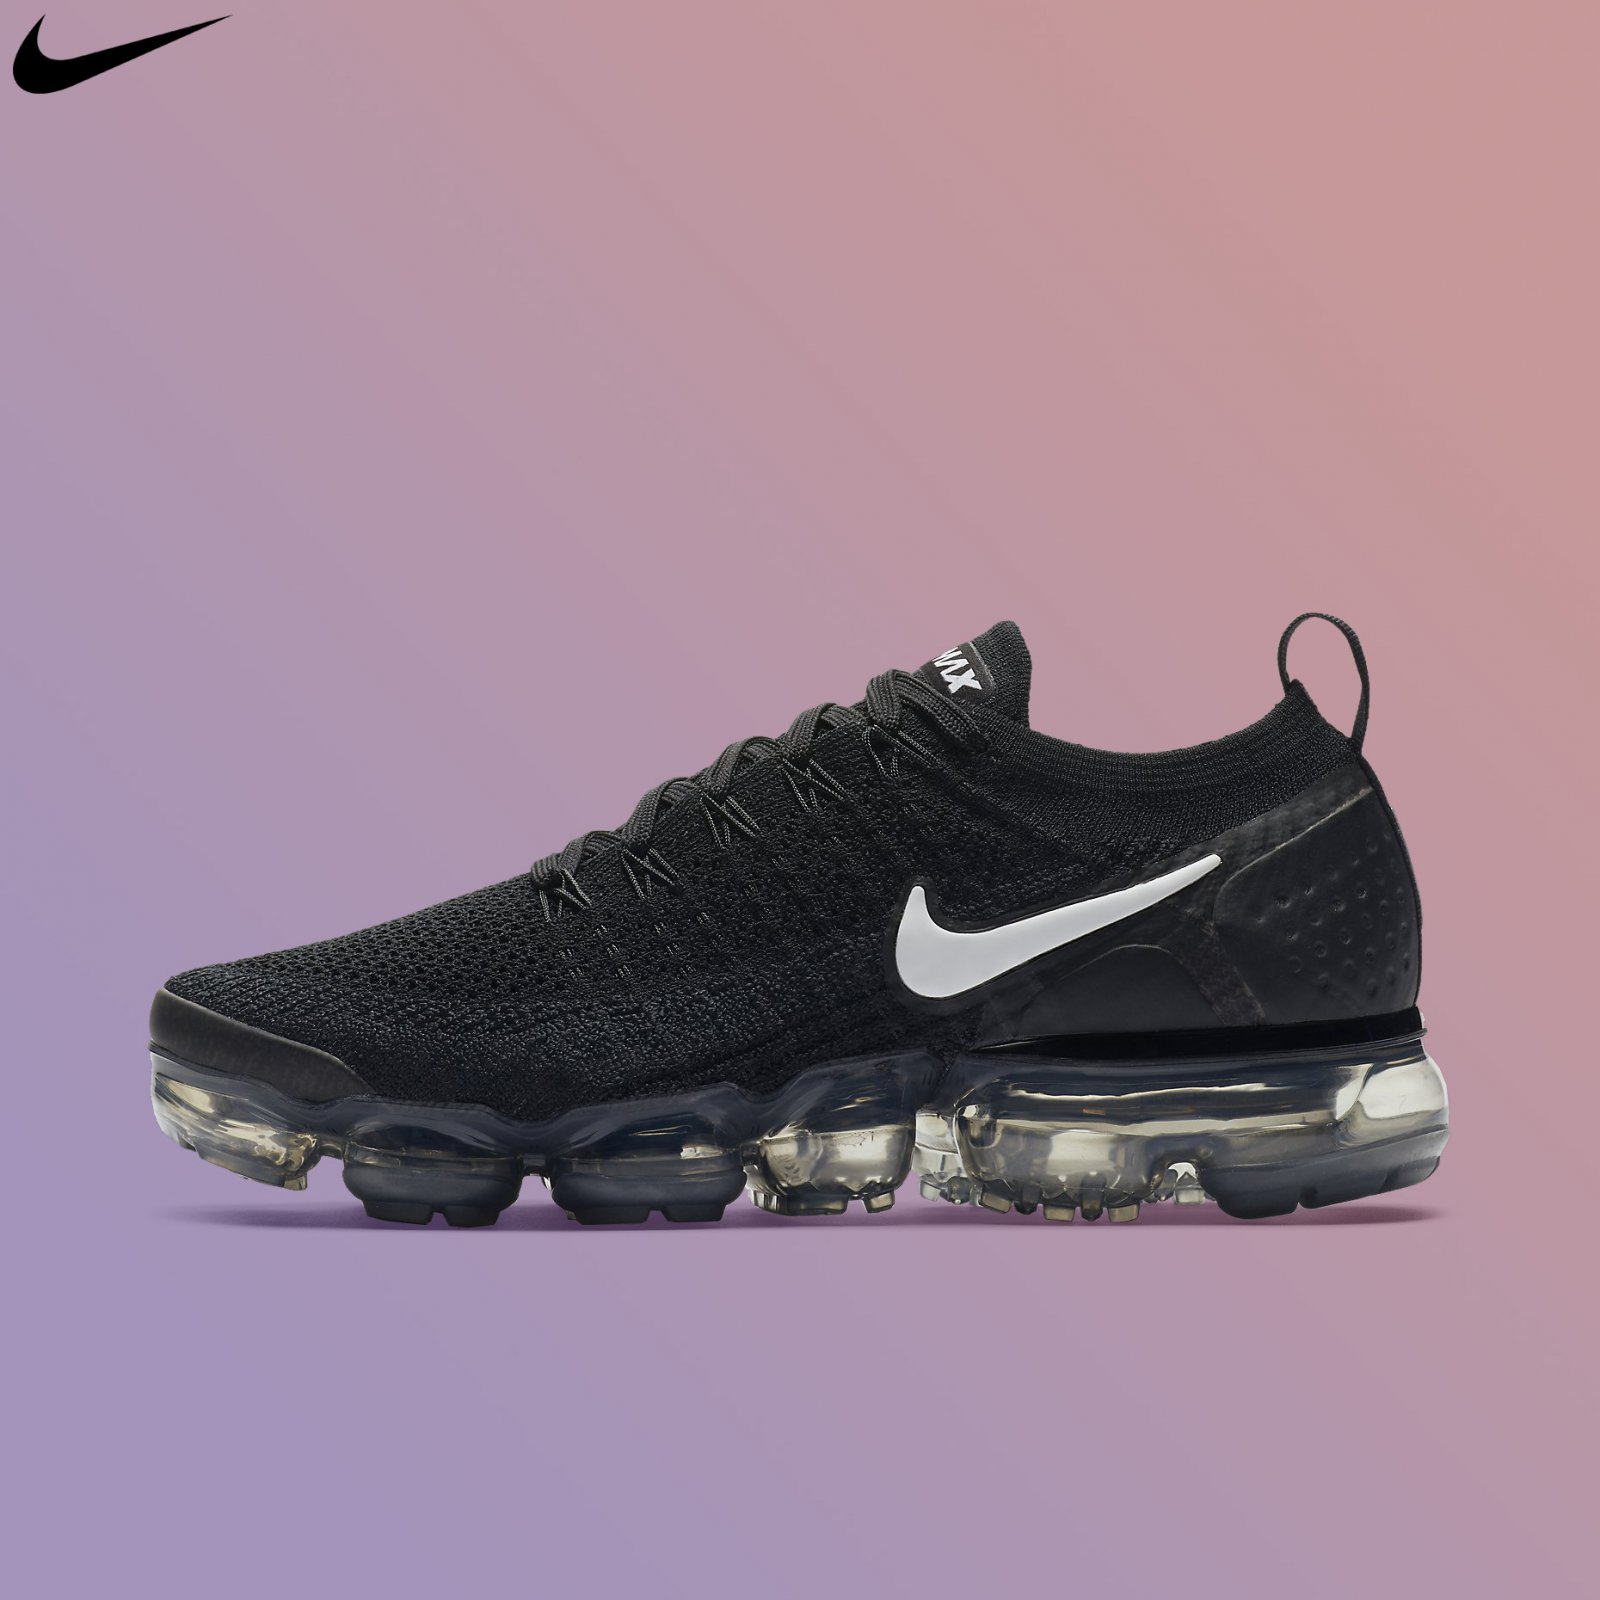 a38c2b778fae9 Nike Women's Air Vapormax Flyknit 2.0 Black White Grey Running Shoes ...